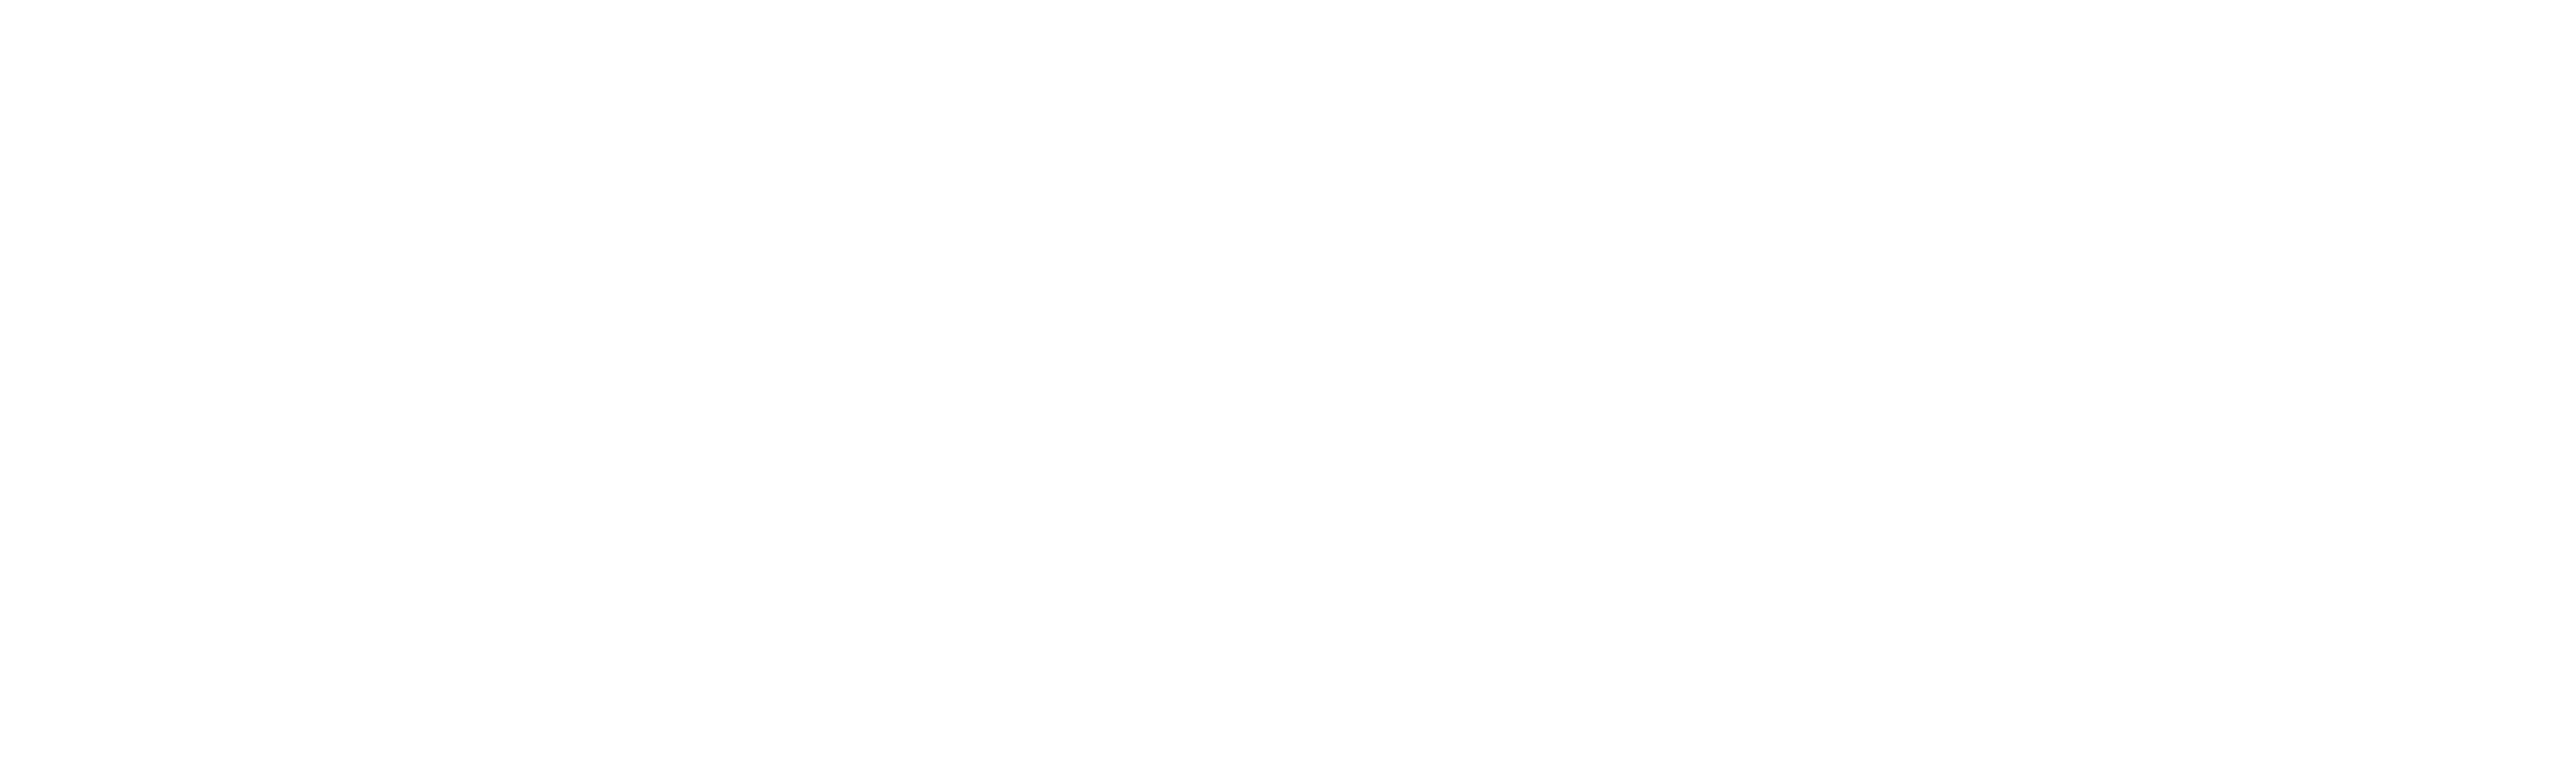 MyPath | Student Applications | Study Abroad Webinar | Contact Us